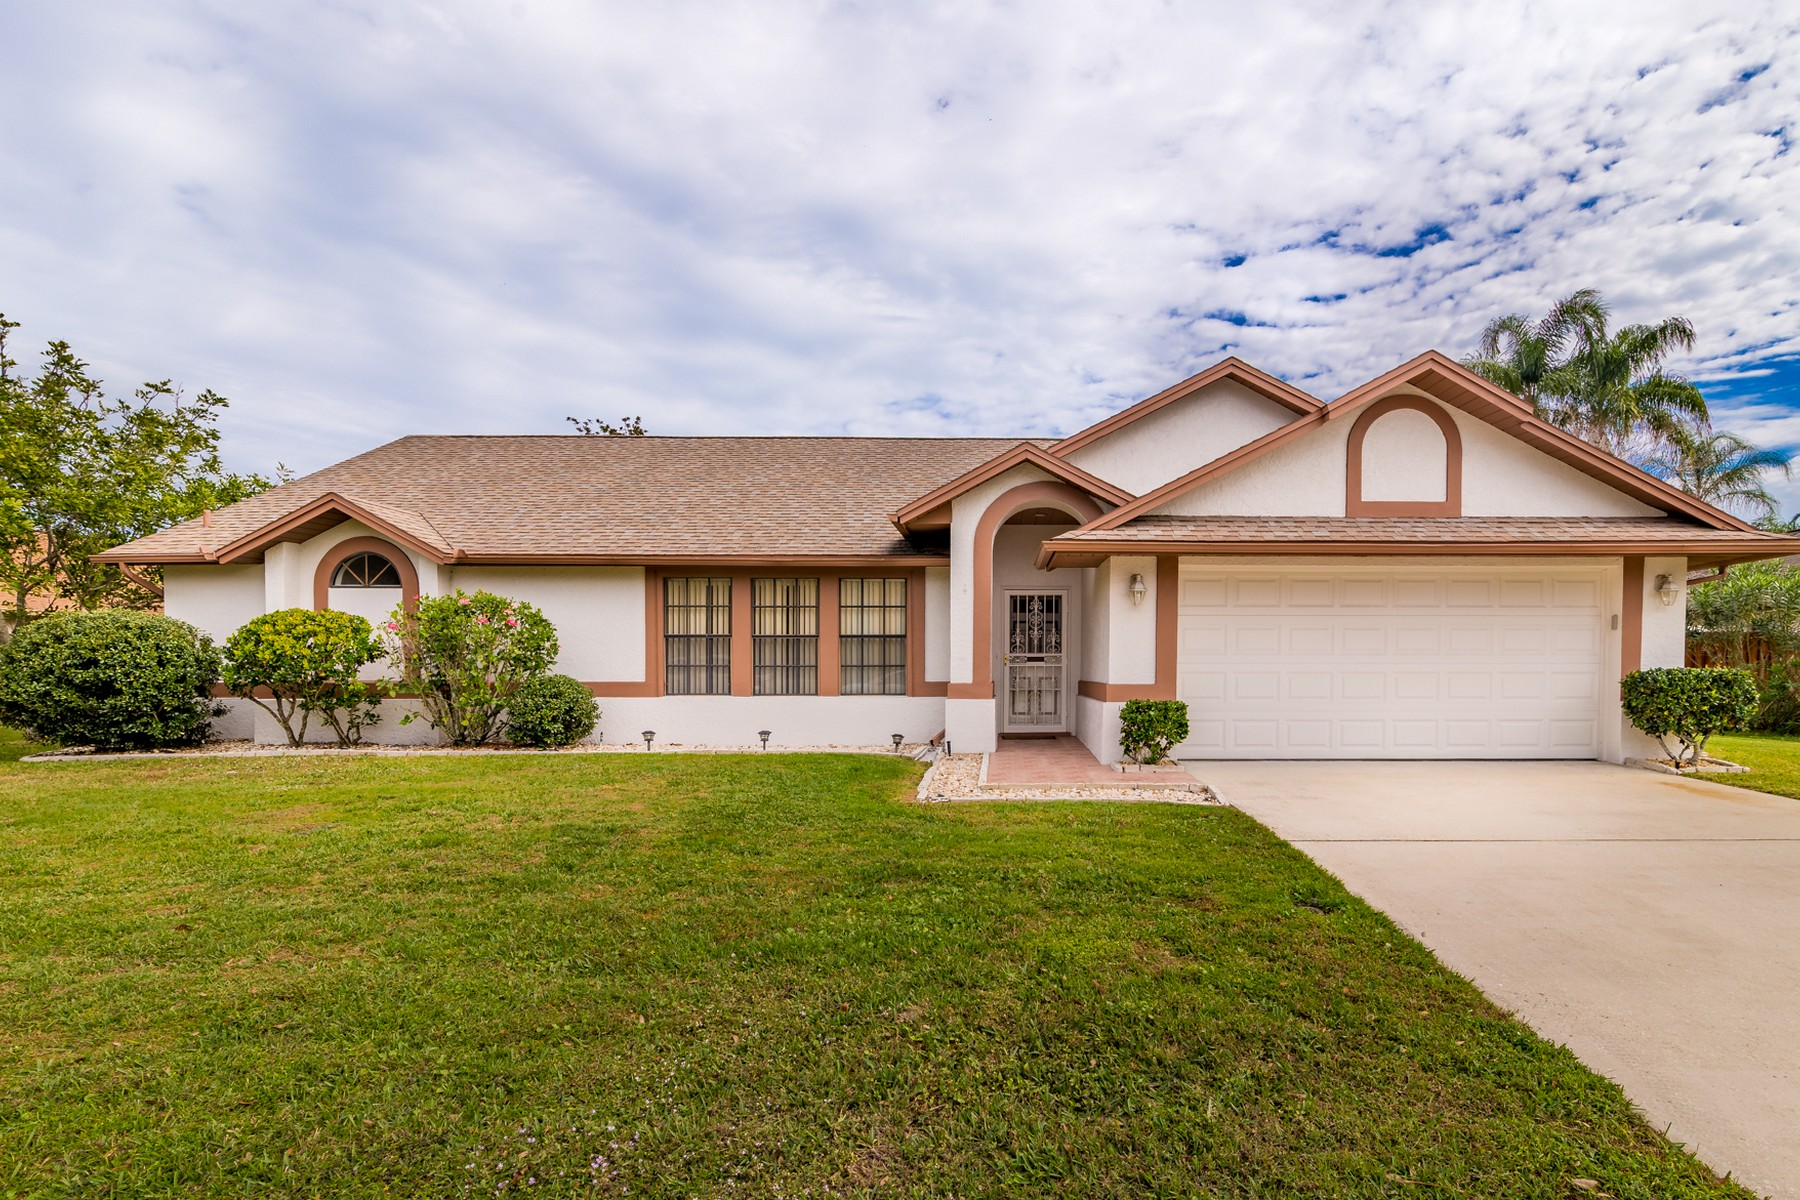 Single Family Home for Sale at Charming home in sought after Kingsmill. 2457 Kingsmill Avenue Melbourne, Florida 32934 United States